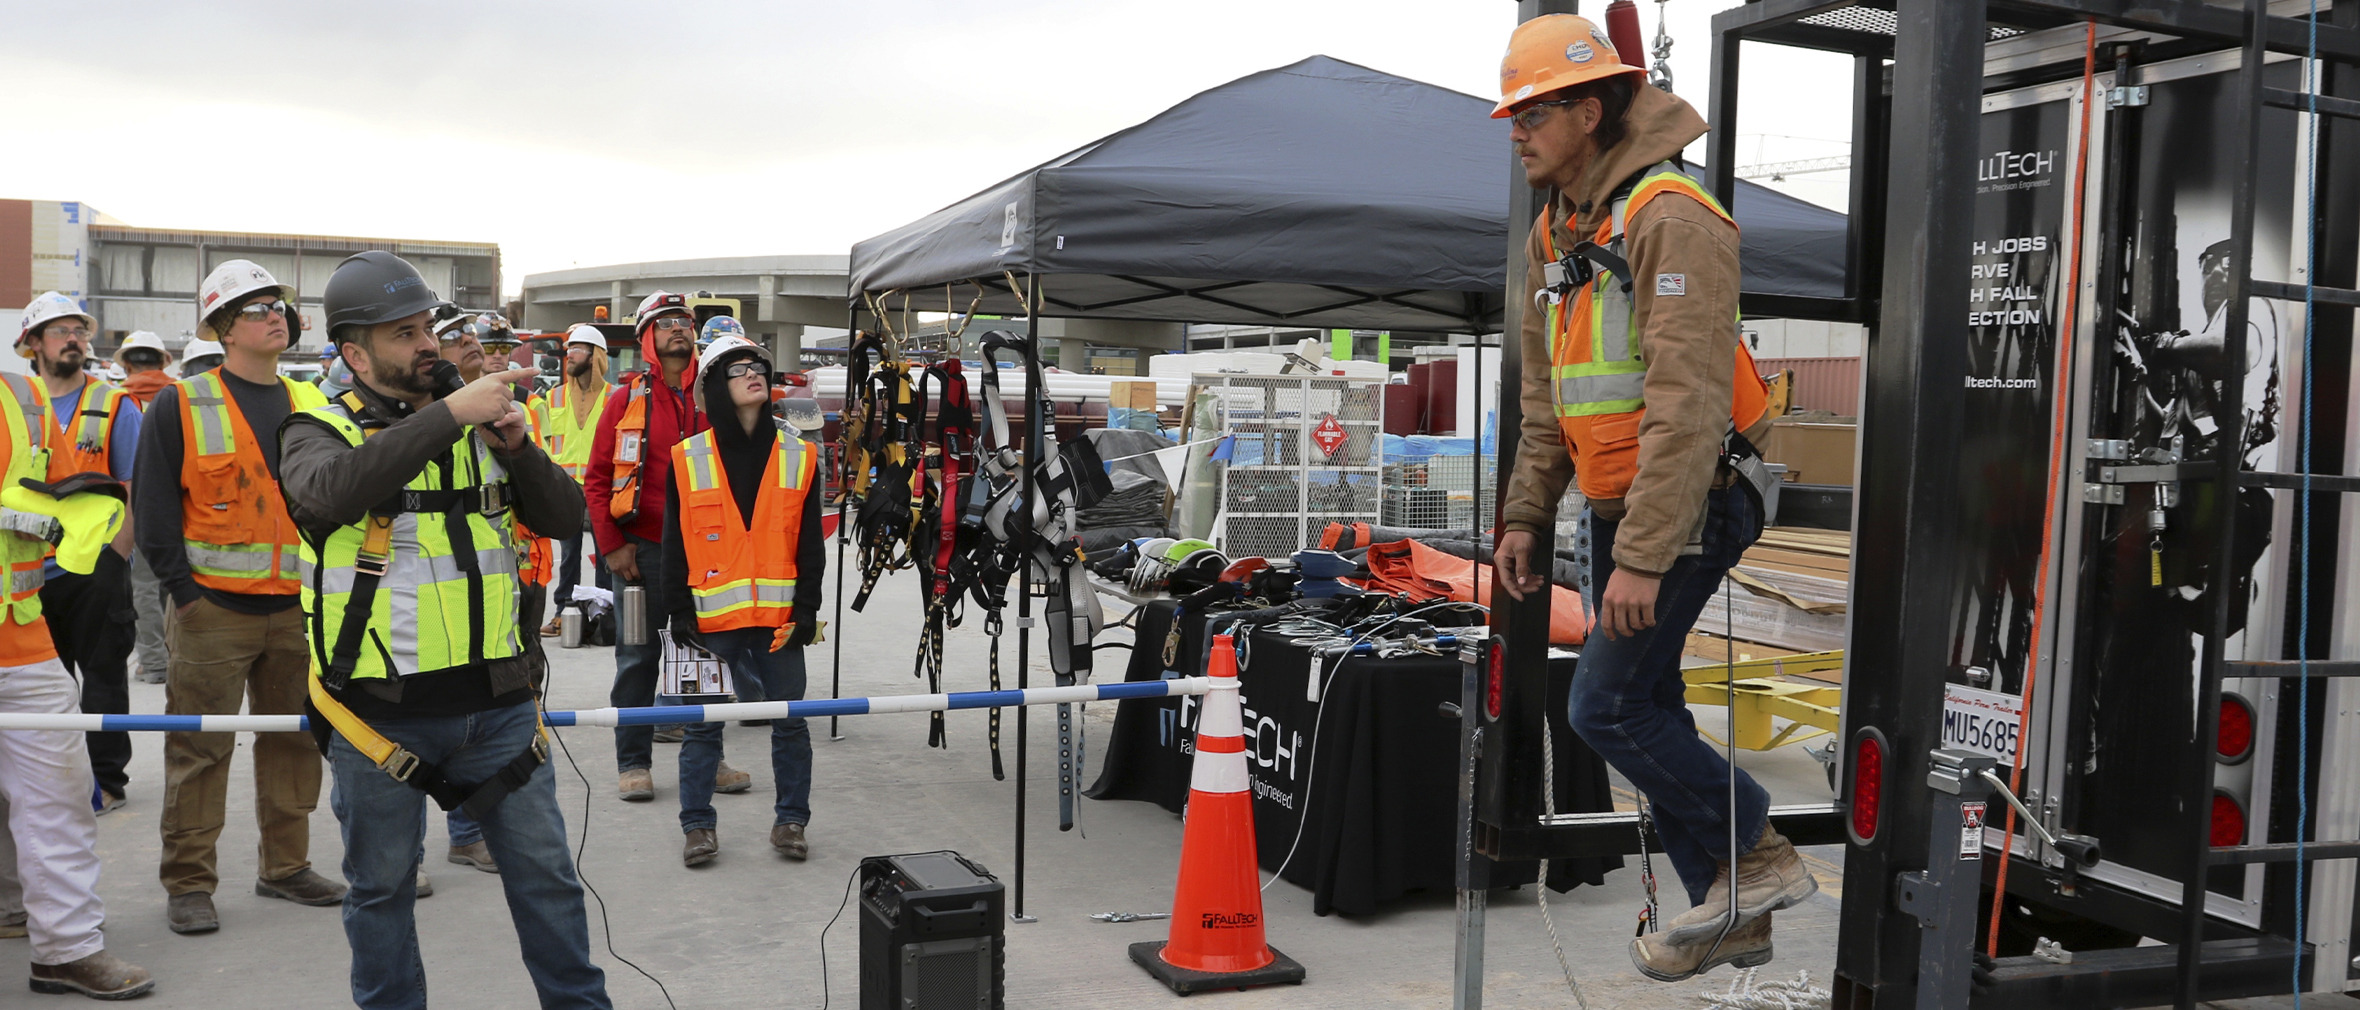 FallTech Regional Sales Manager Mike Tavis teaching a group of construction workers the importance of trauma relief when suspended from a fall protection harness